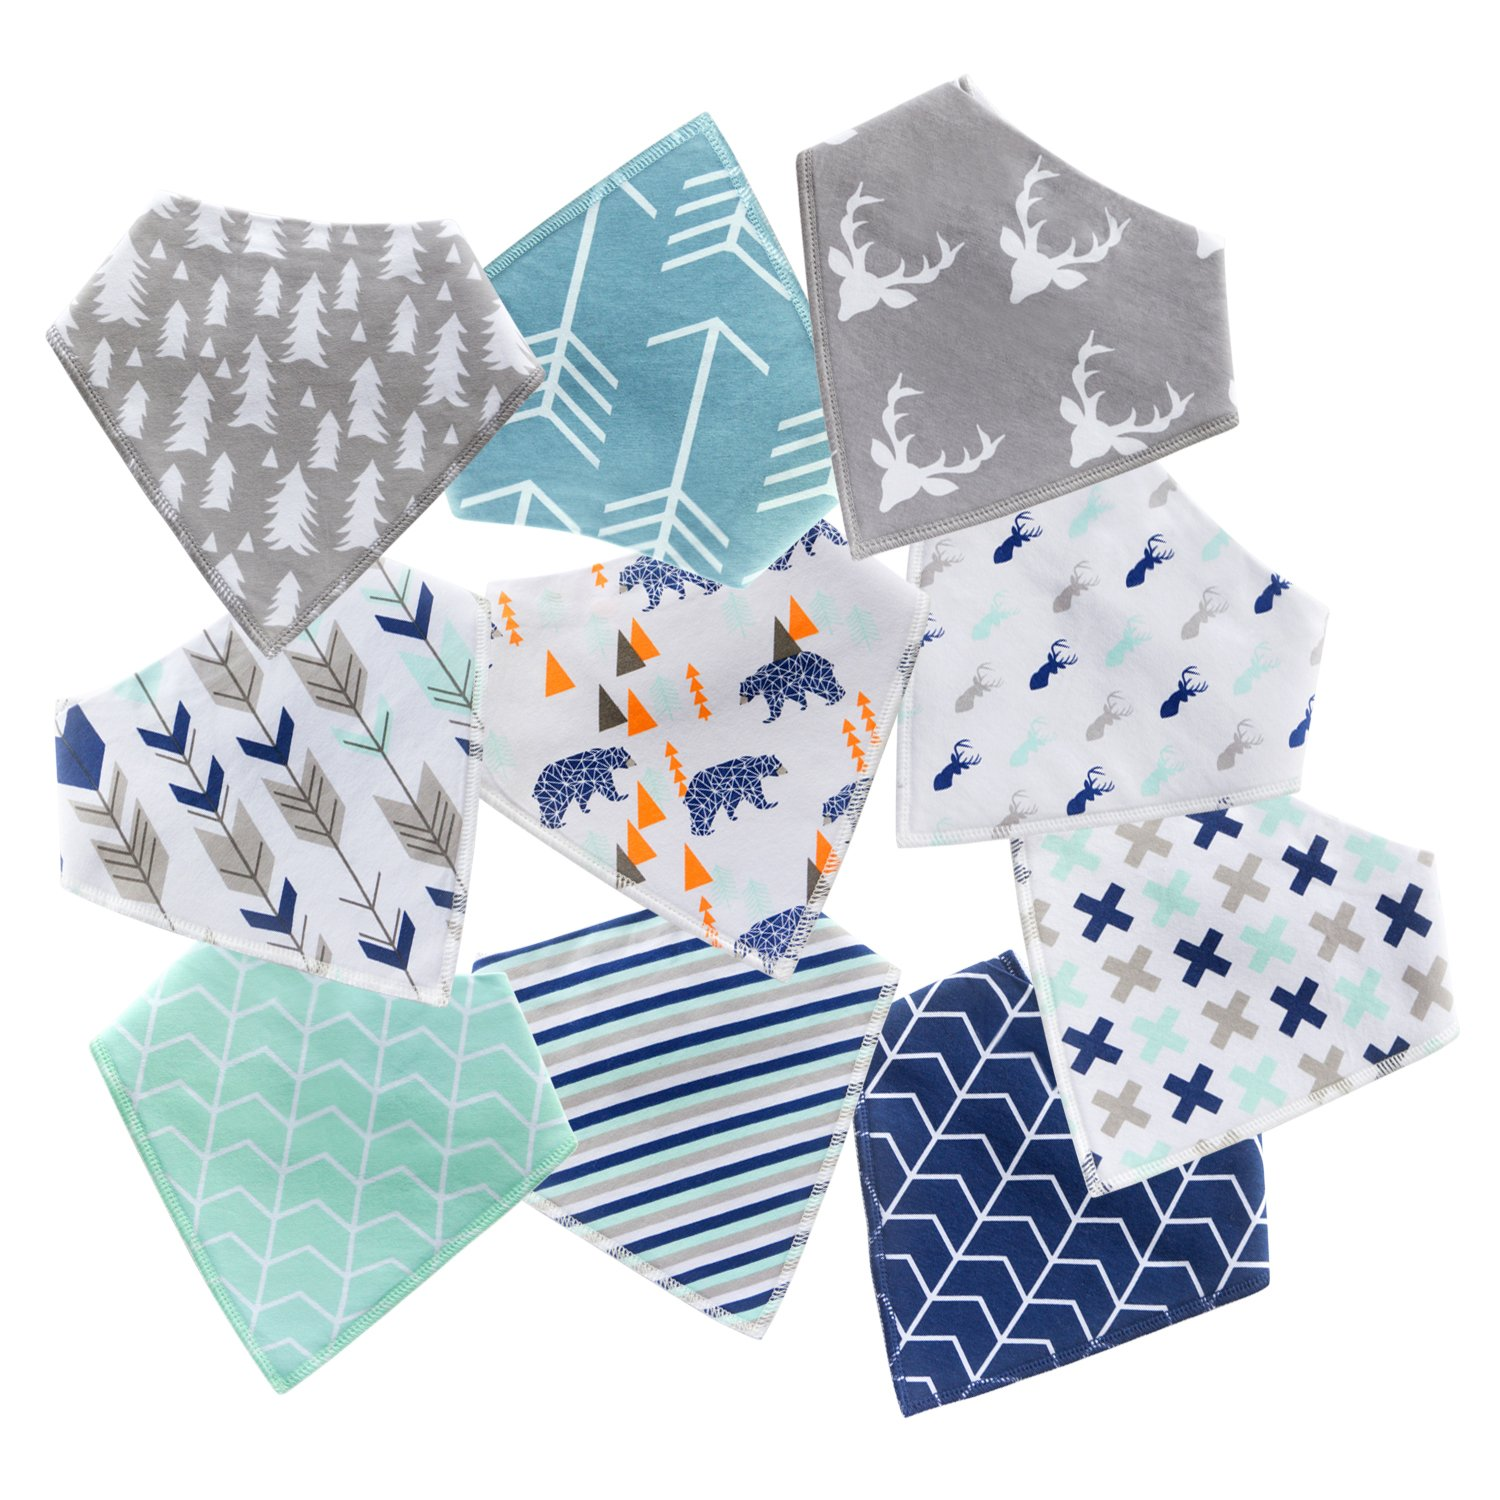 10-Pack Baby Bandana Drool Bibs for Drooling and Teething Boys Girls by MiiYoung by MiiYoung (Image #8)